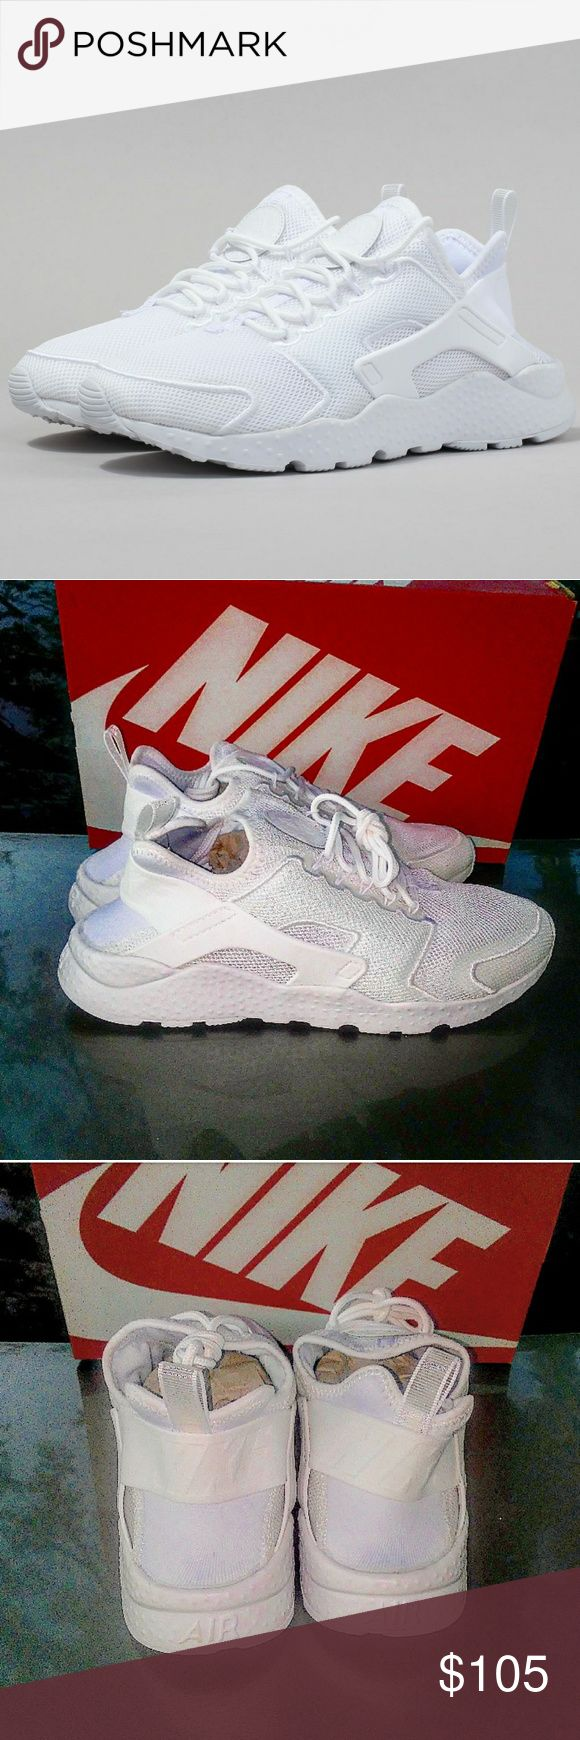 Womens Nike Air Huarache Ultra Br (Size 9) Brand new in box 100% authentic Excellent condition Size 9 women White w/ a hint of glacier blue colorway Ships doubled boxed Secured packaging  Crispy white shoes for the holidays. Get Snowman fresh for the holidays. A nice ugly 🎅 Christmas sweater, jeans and fresh white on white huaraches will make the cycle complete. Nike Shoes Sneakers